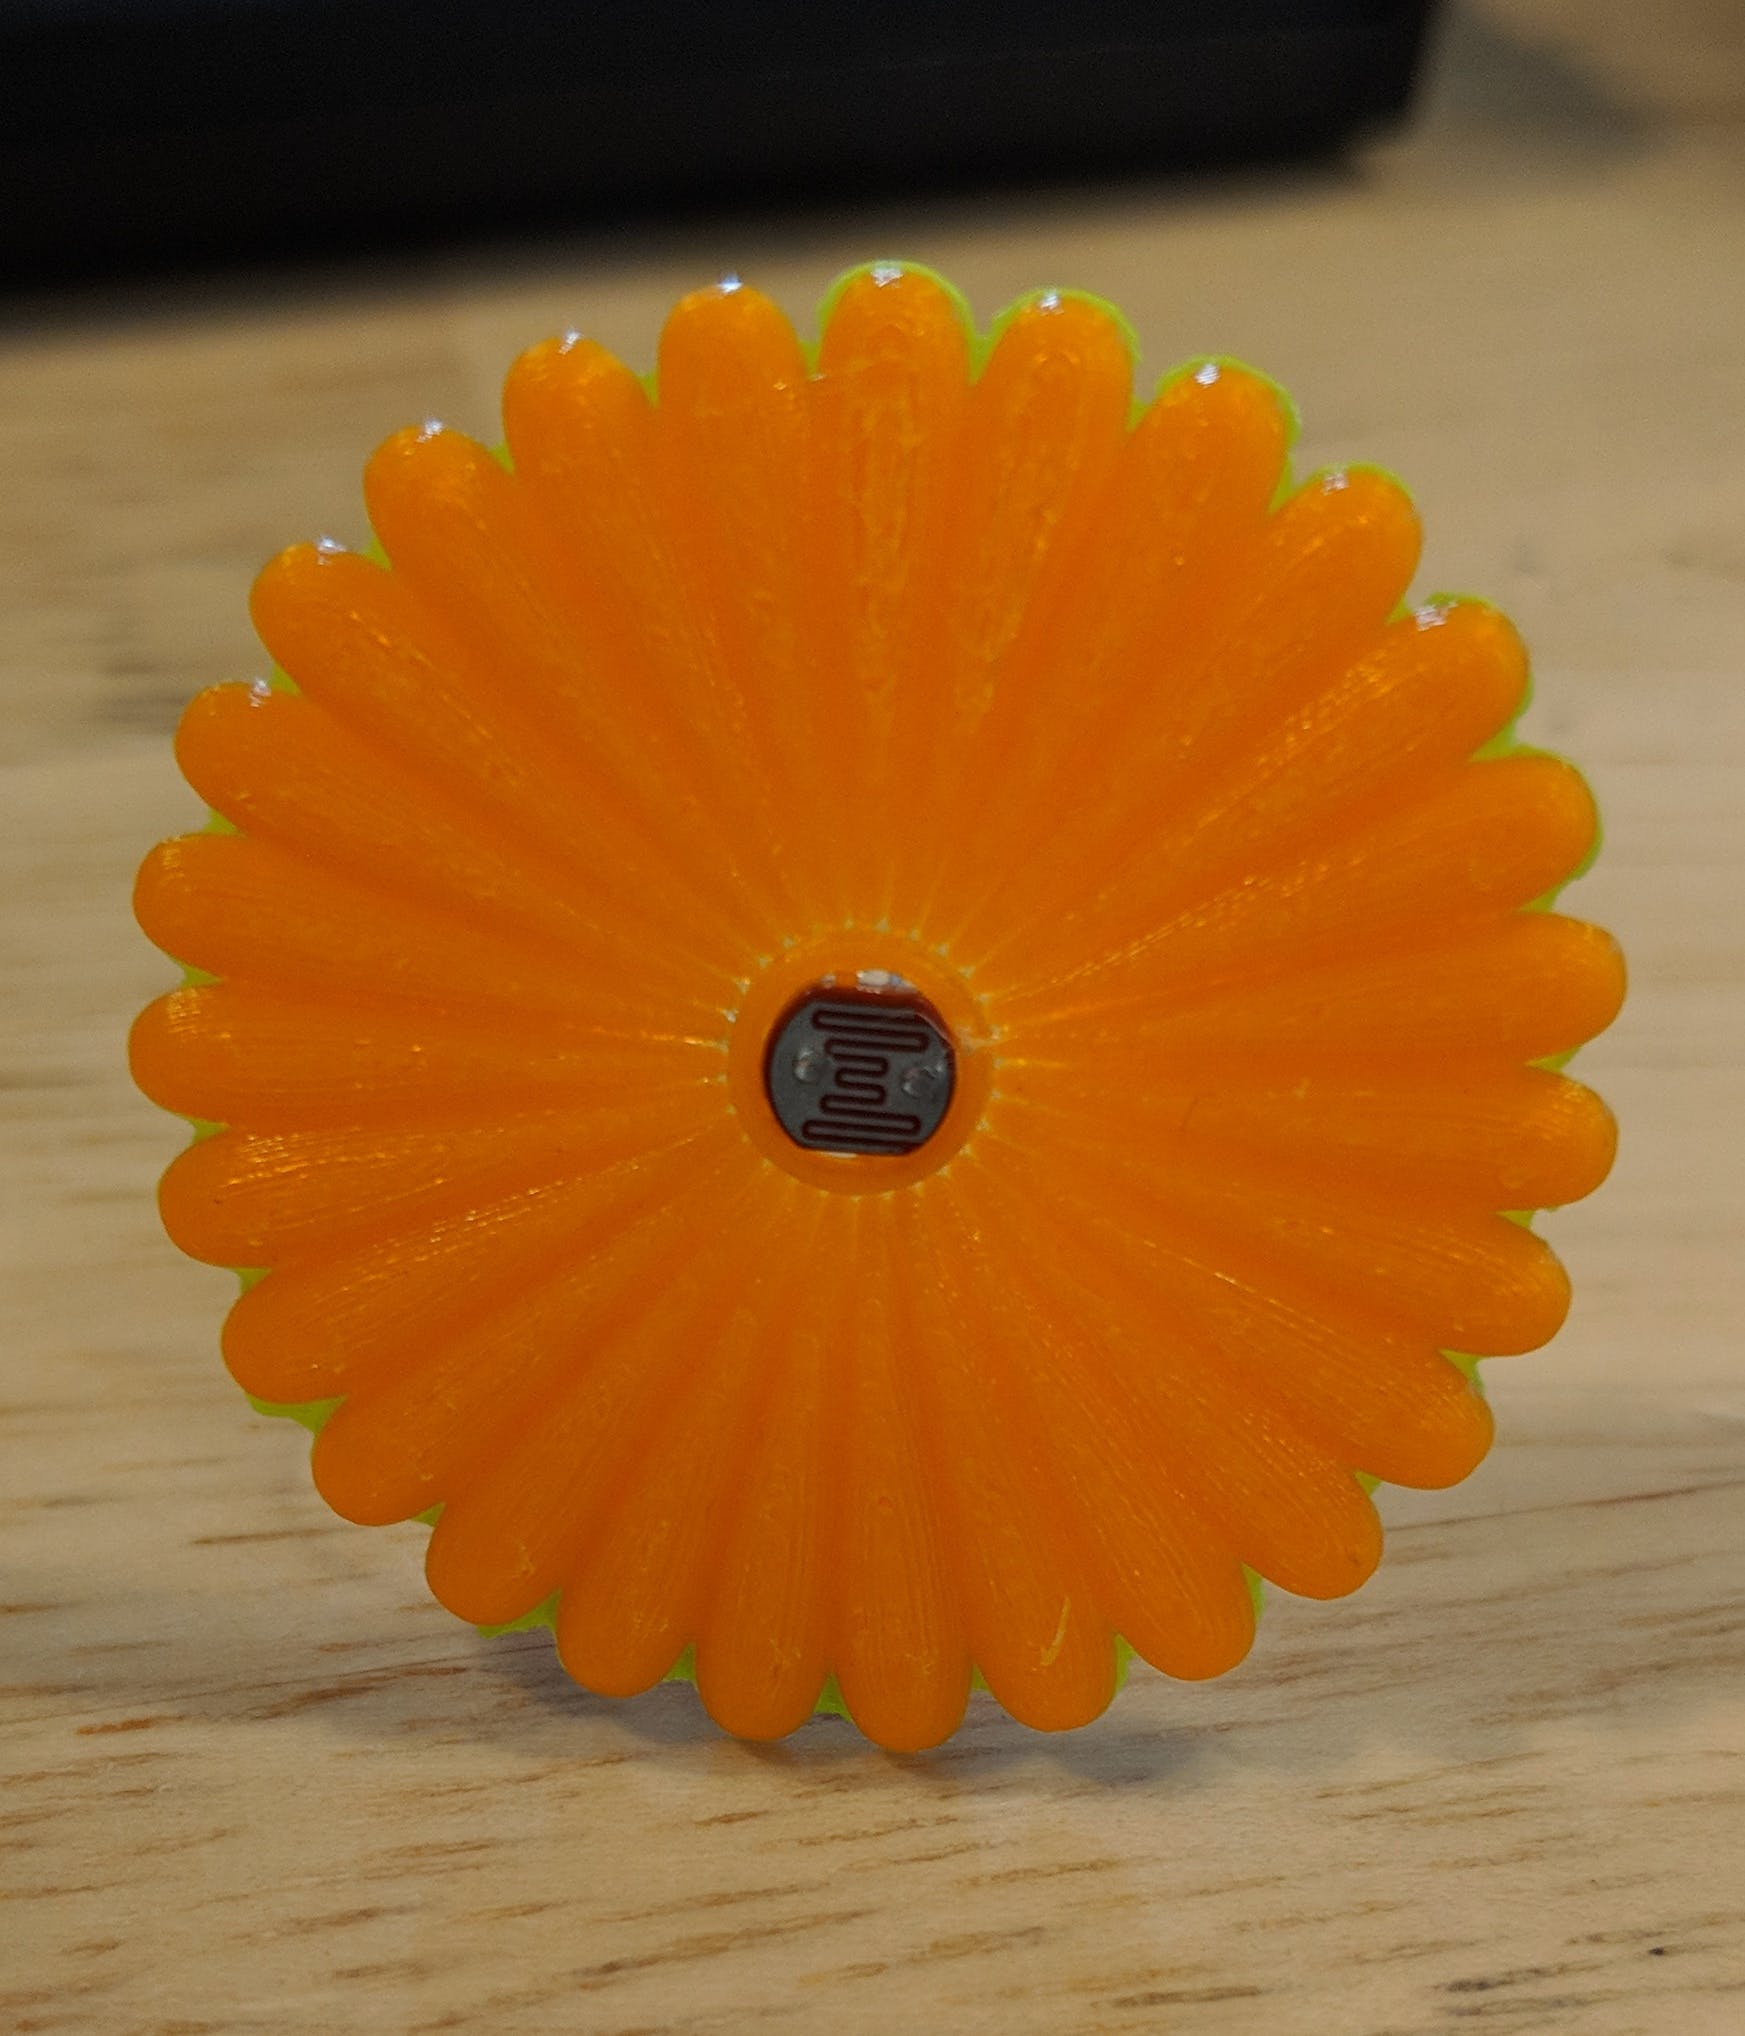 Photoresistor in its flower costume